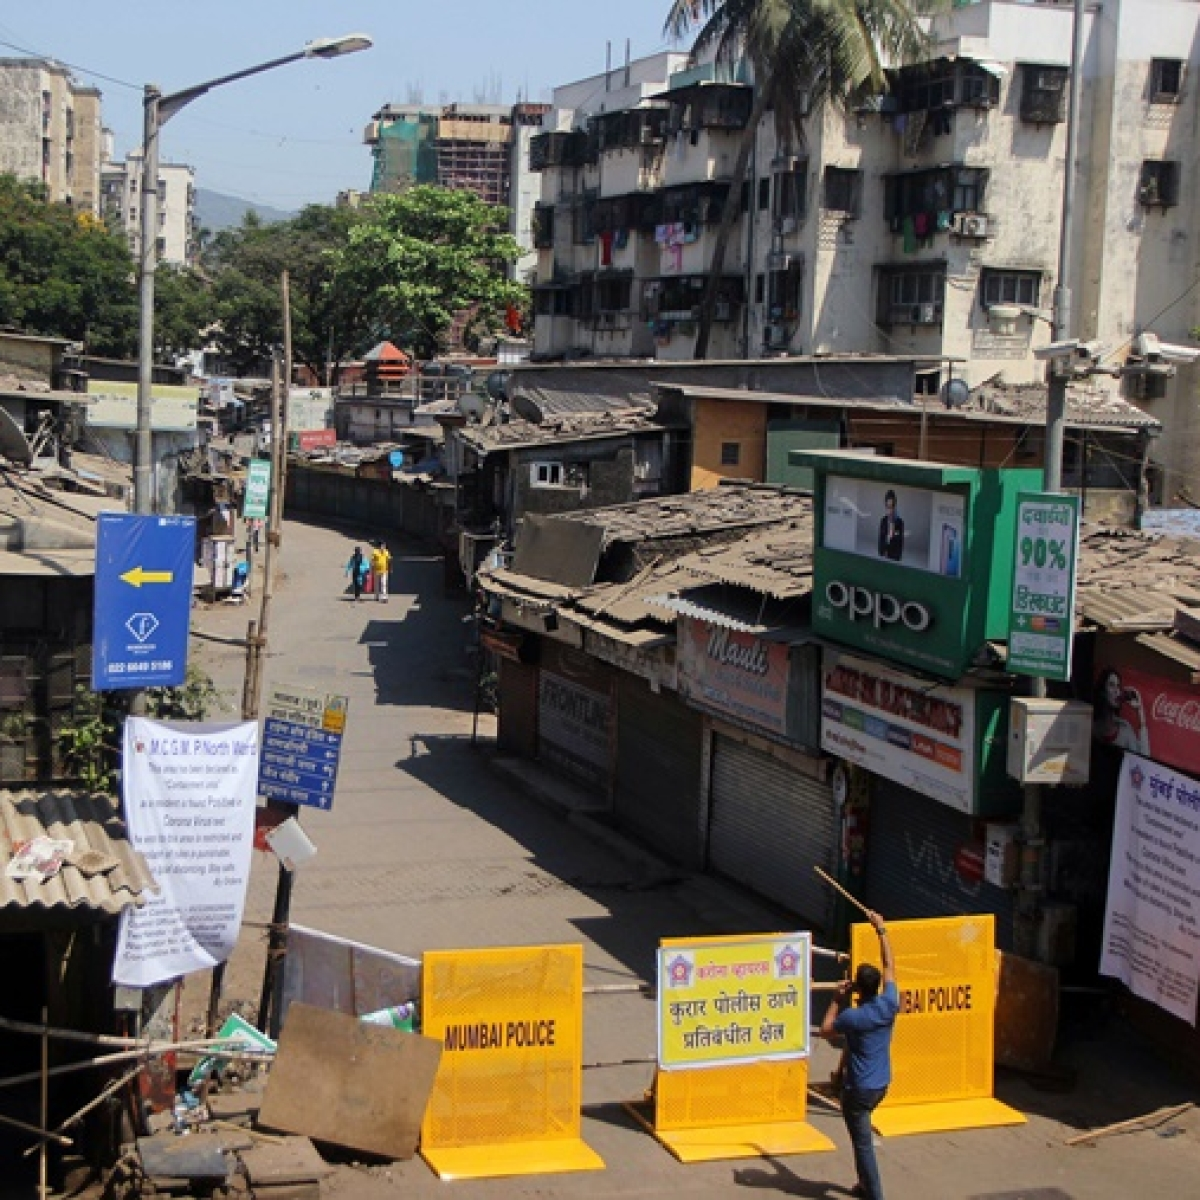 Coronavirus in Mumbai: Full list of COVID-19 containment zones from Colaba in SoBo to Borivali in West and Mulund in East issued by BMC as of May 17